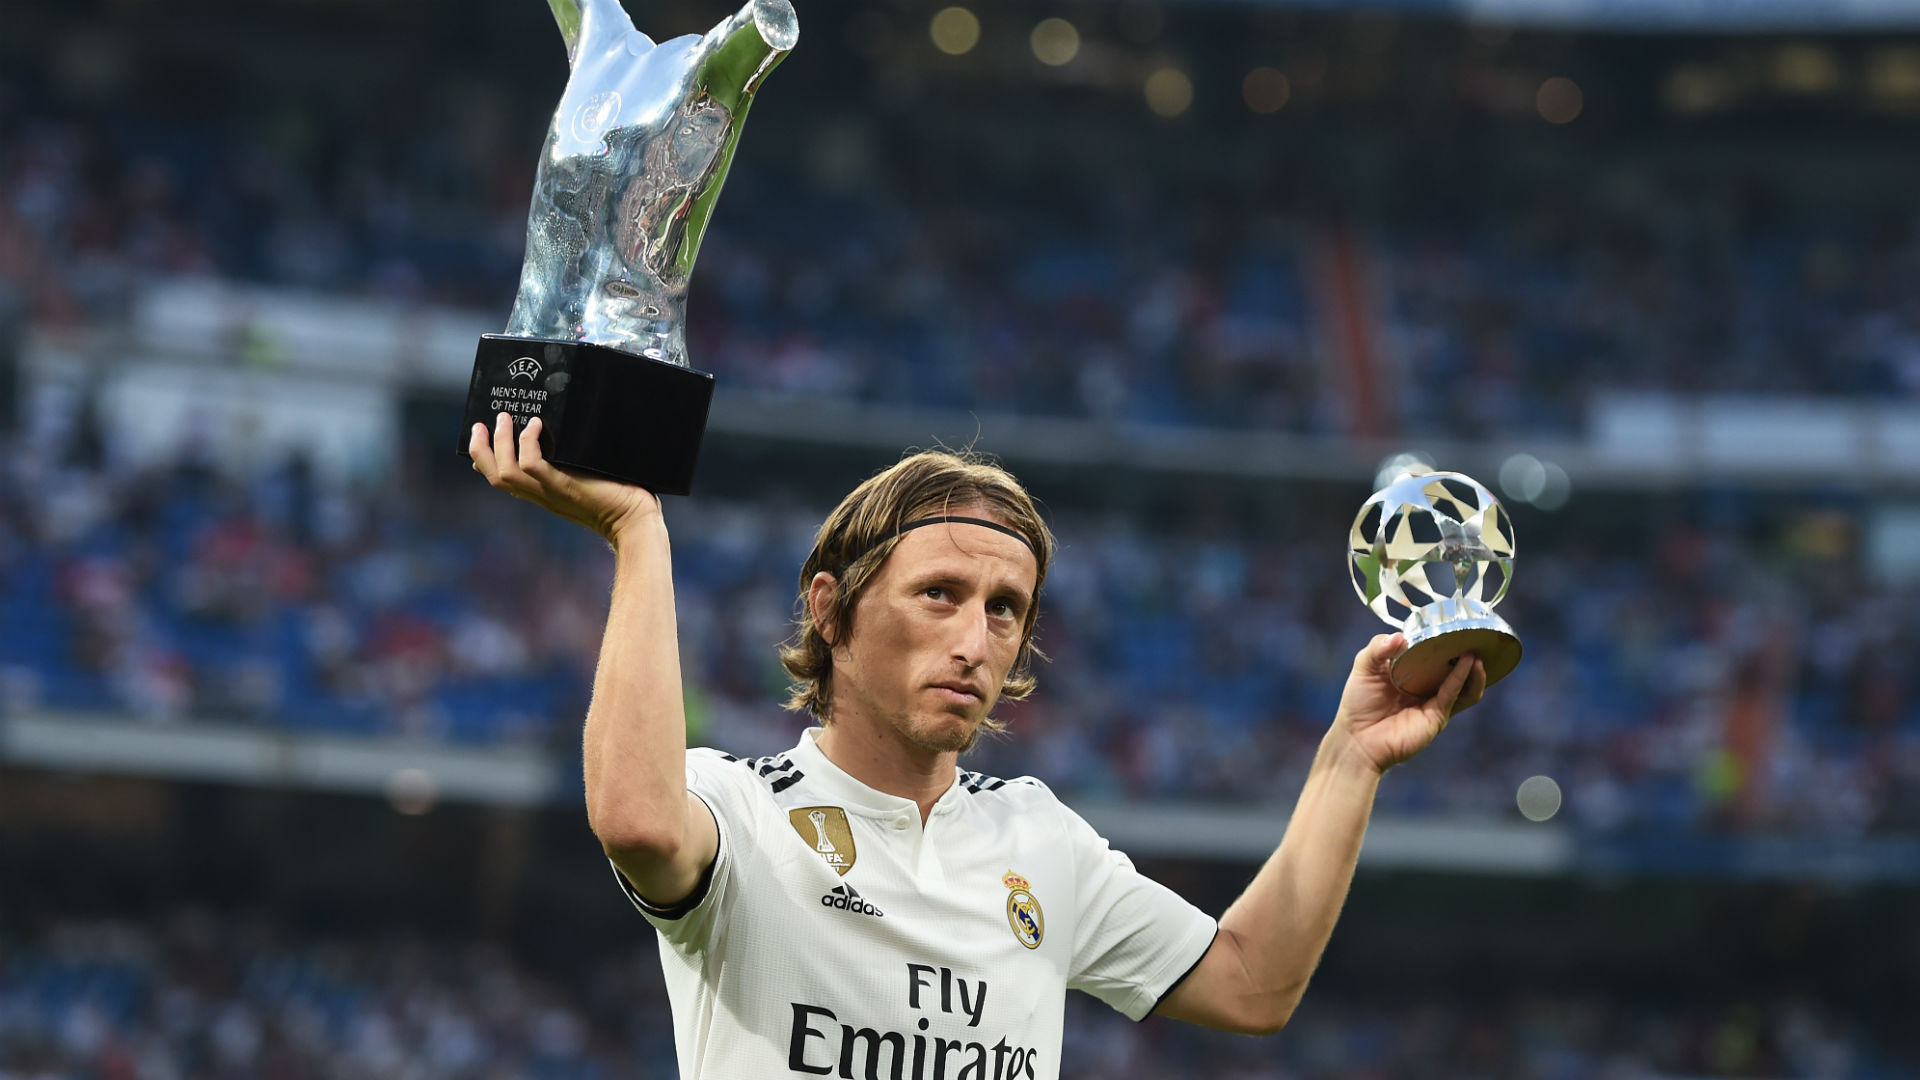 Ballon d'Or winner Modric wants to retire at Real Madrid